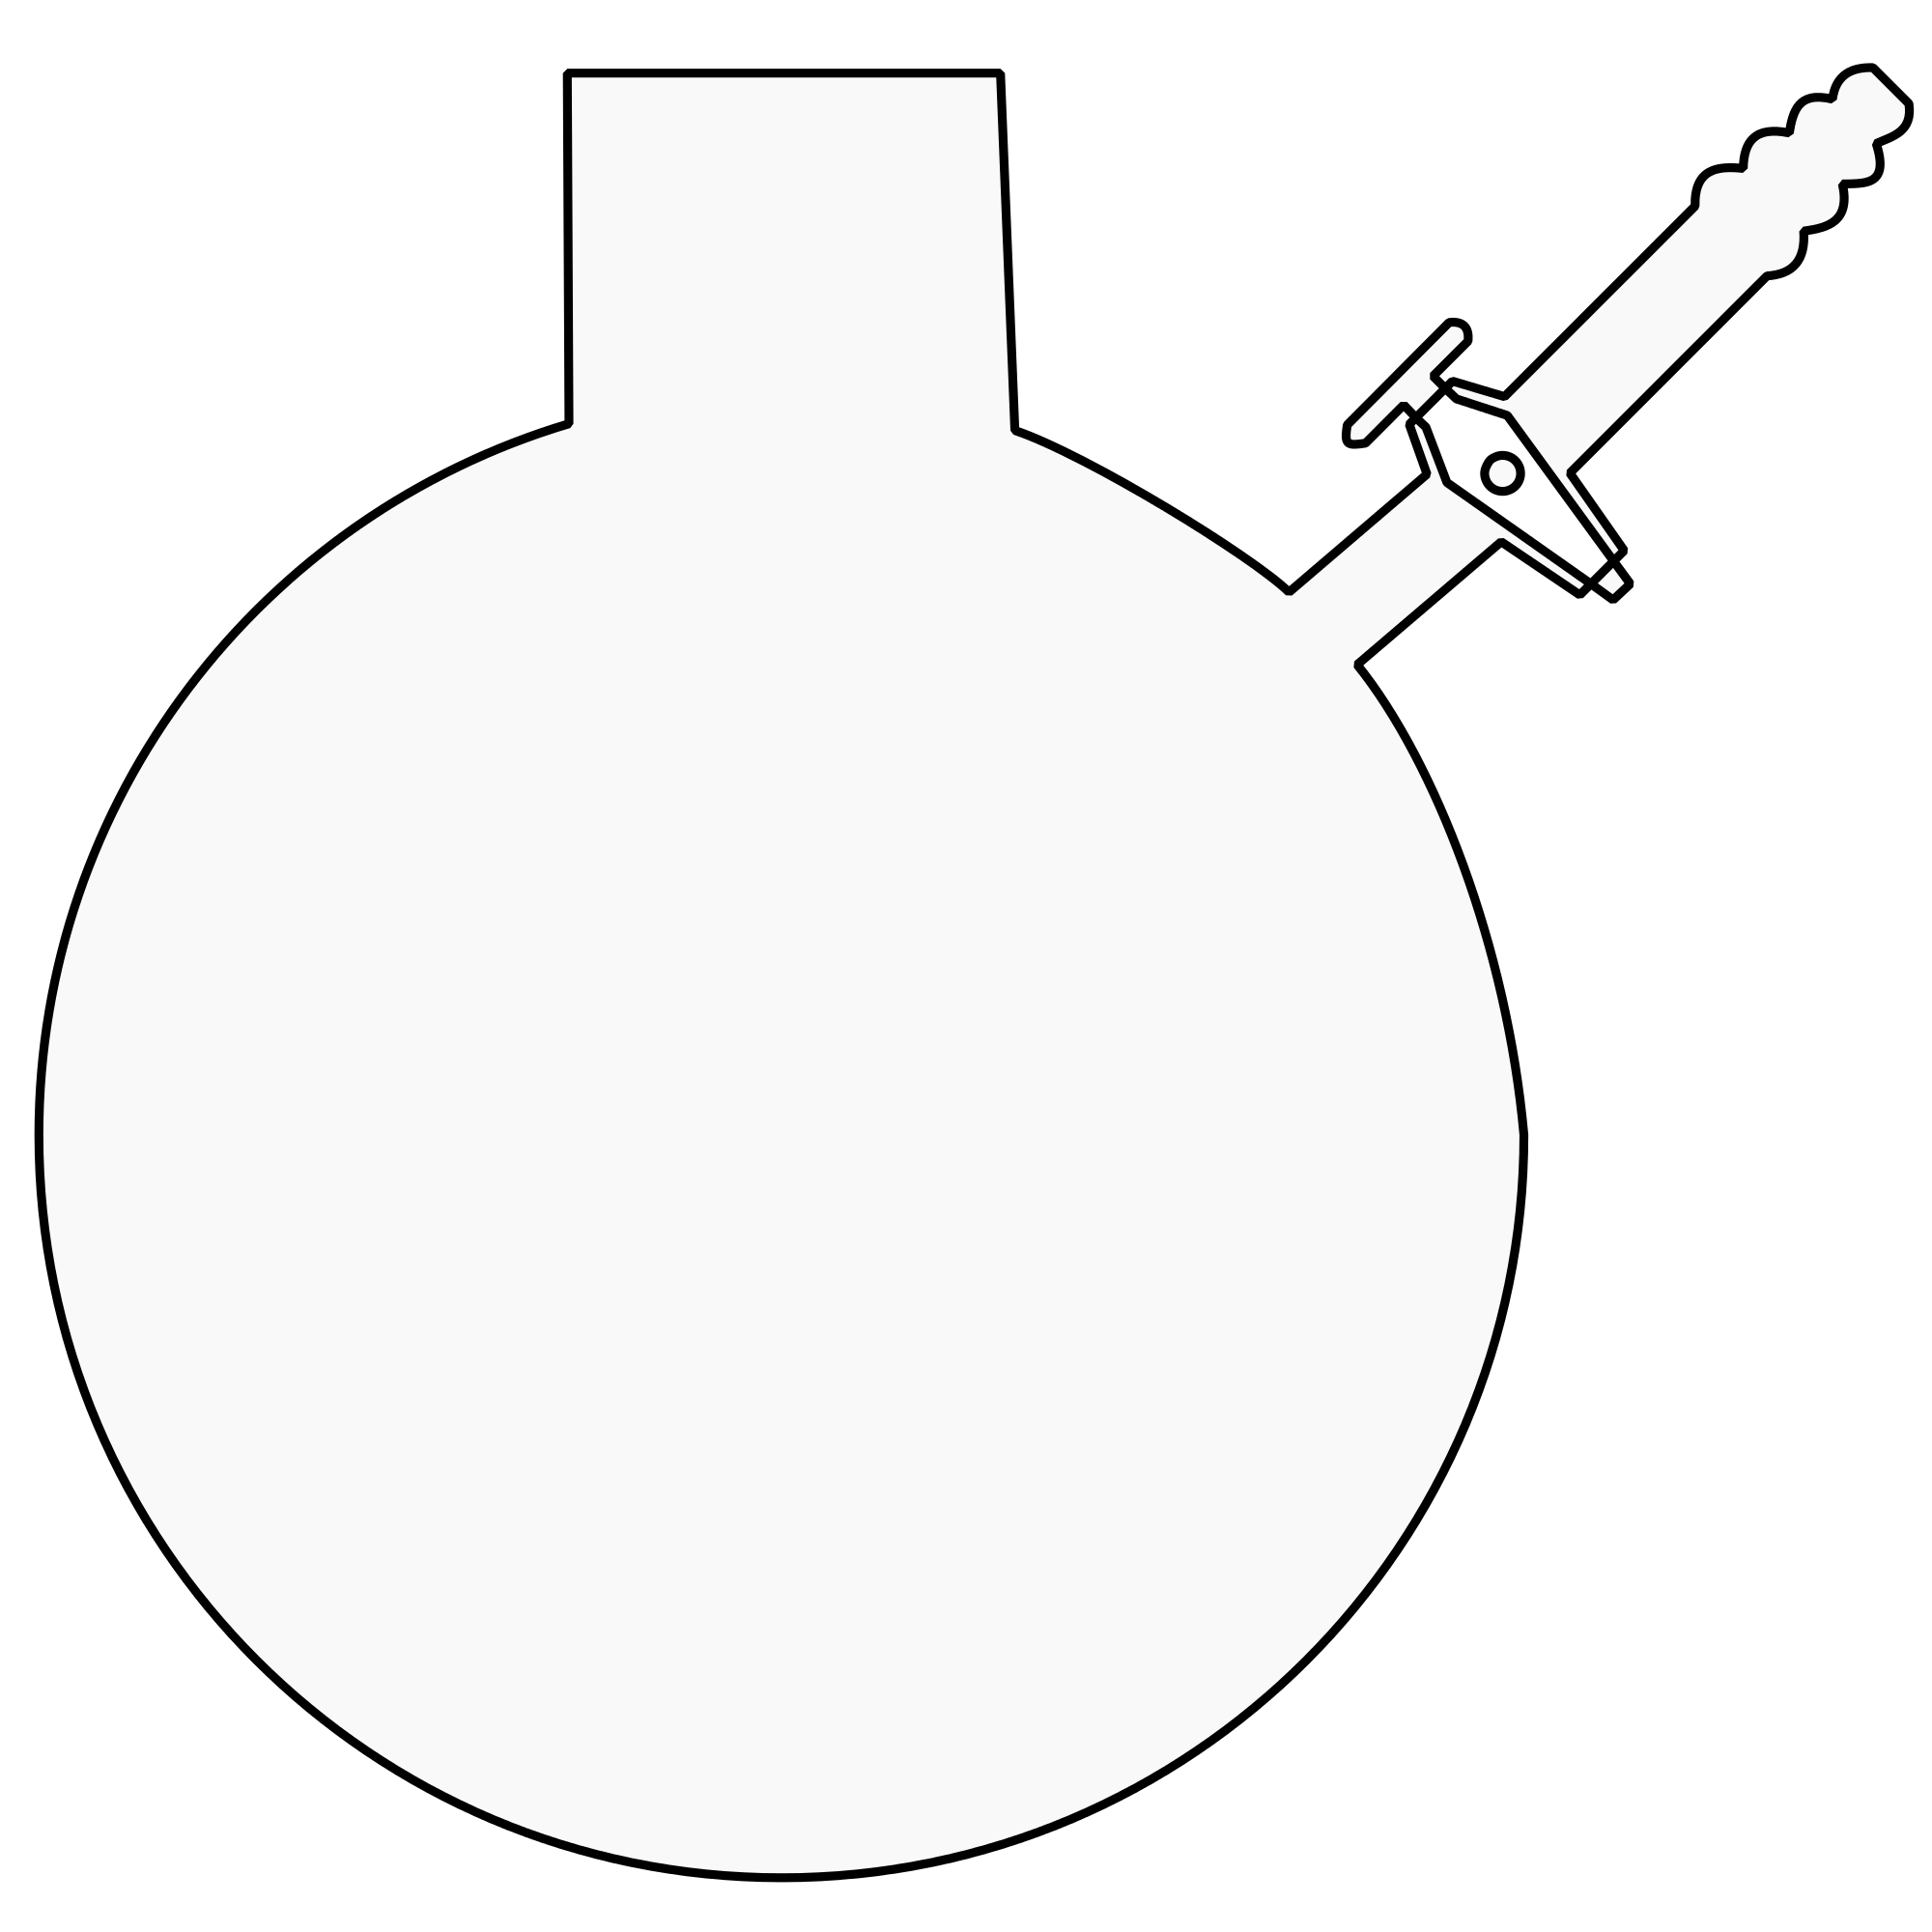 2000x2000 Fileschlenk Flask.svg